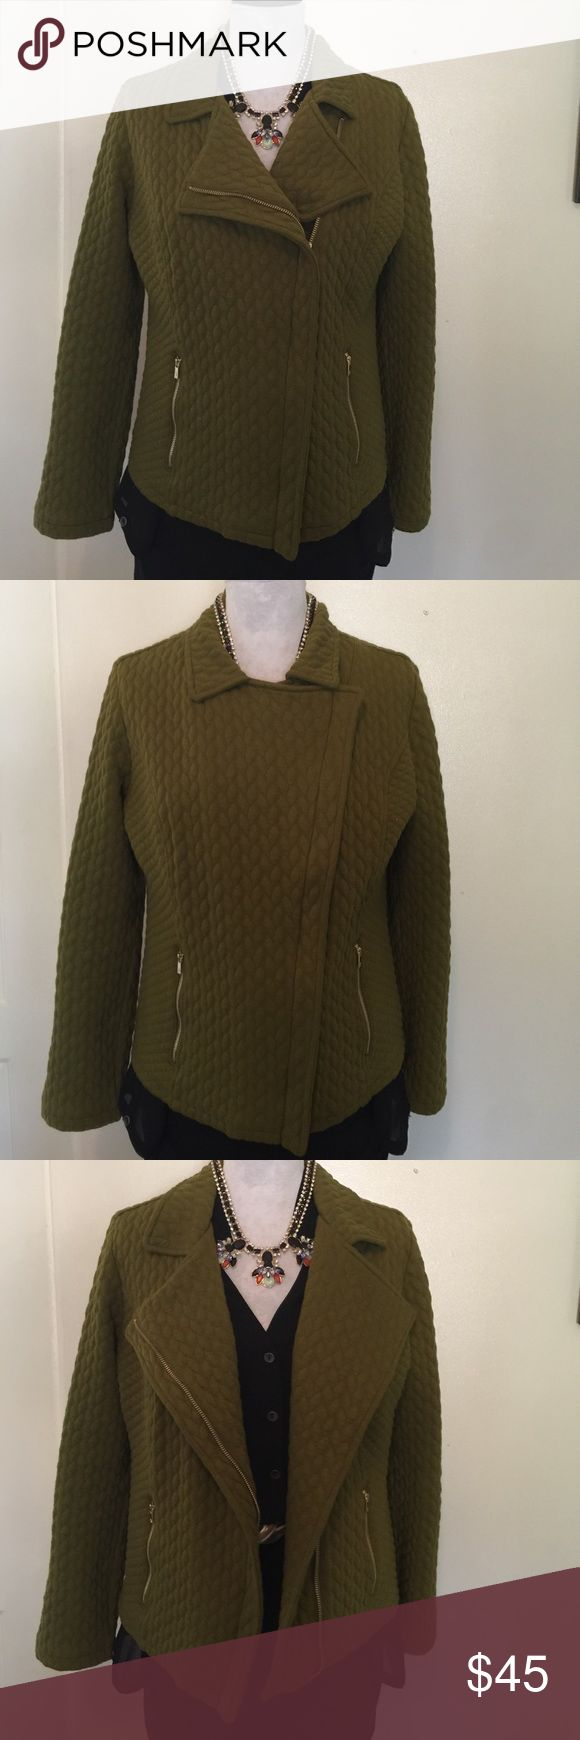 """Isaac Mizrahi LIVE Motorcycle Jacket KNIT sz M Isaac Mizrahi LIVE (QVC) makes this stunner of a motorcycle jacket. It's a blazer too due to the amazing styling - you will want to wear it all the ways shown! Color is army green. Fabric is quilted. Metal is gold. 2 zip pockets.  Bust 21"""" flat, length shoulder to hem 24"""" approx! Lots of stretch.  Please check my other listings and add your ❤️'s to a bundle! Everything I sell is authentic as everything I buy is authentic. Thx for looking ❤️…"""